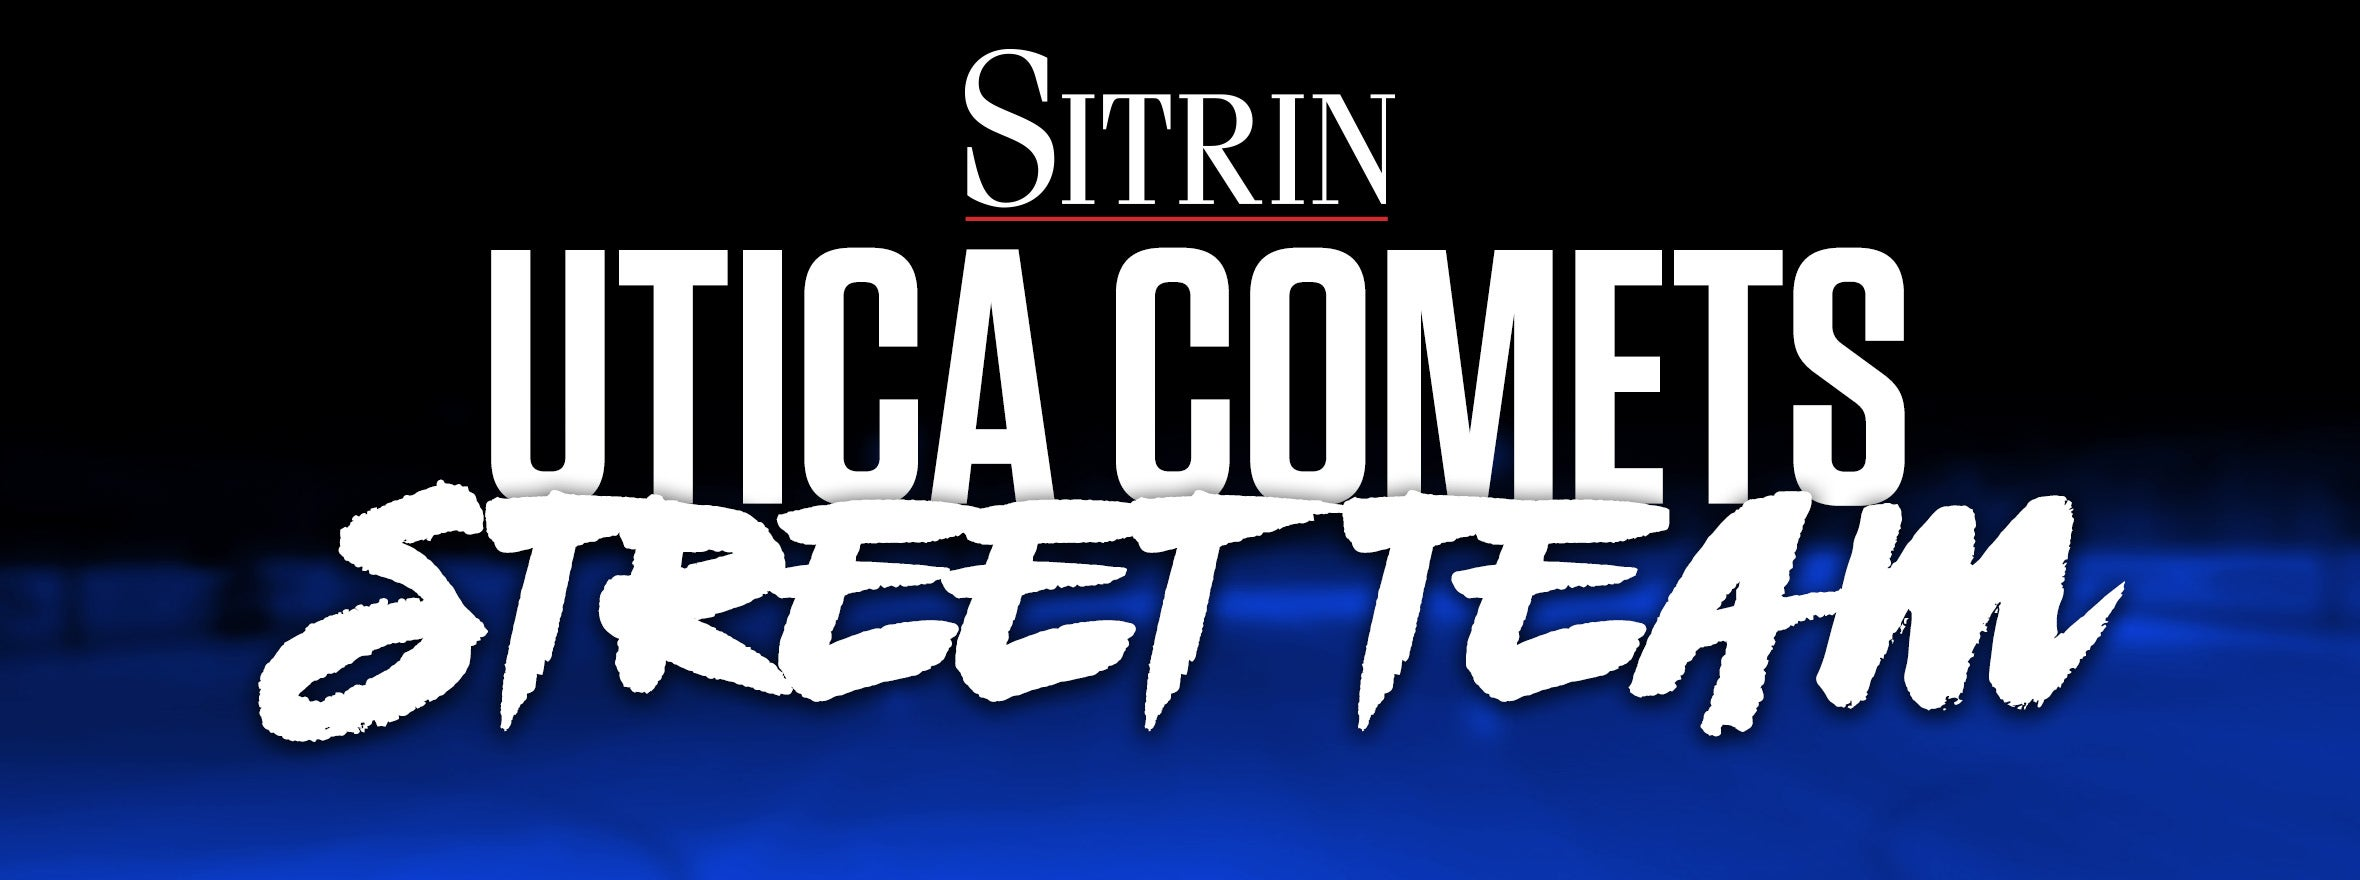 COMETS ADD RAINMAN AND SITRIN STREET TEAM